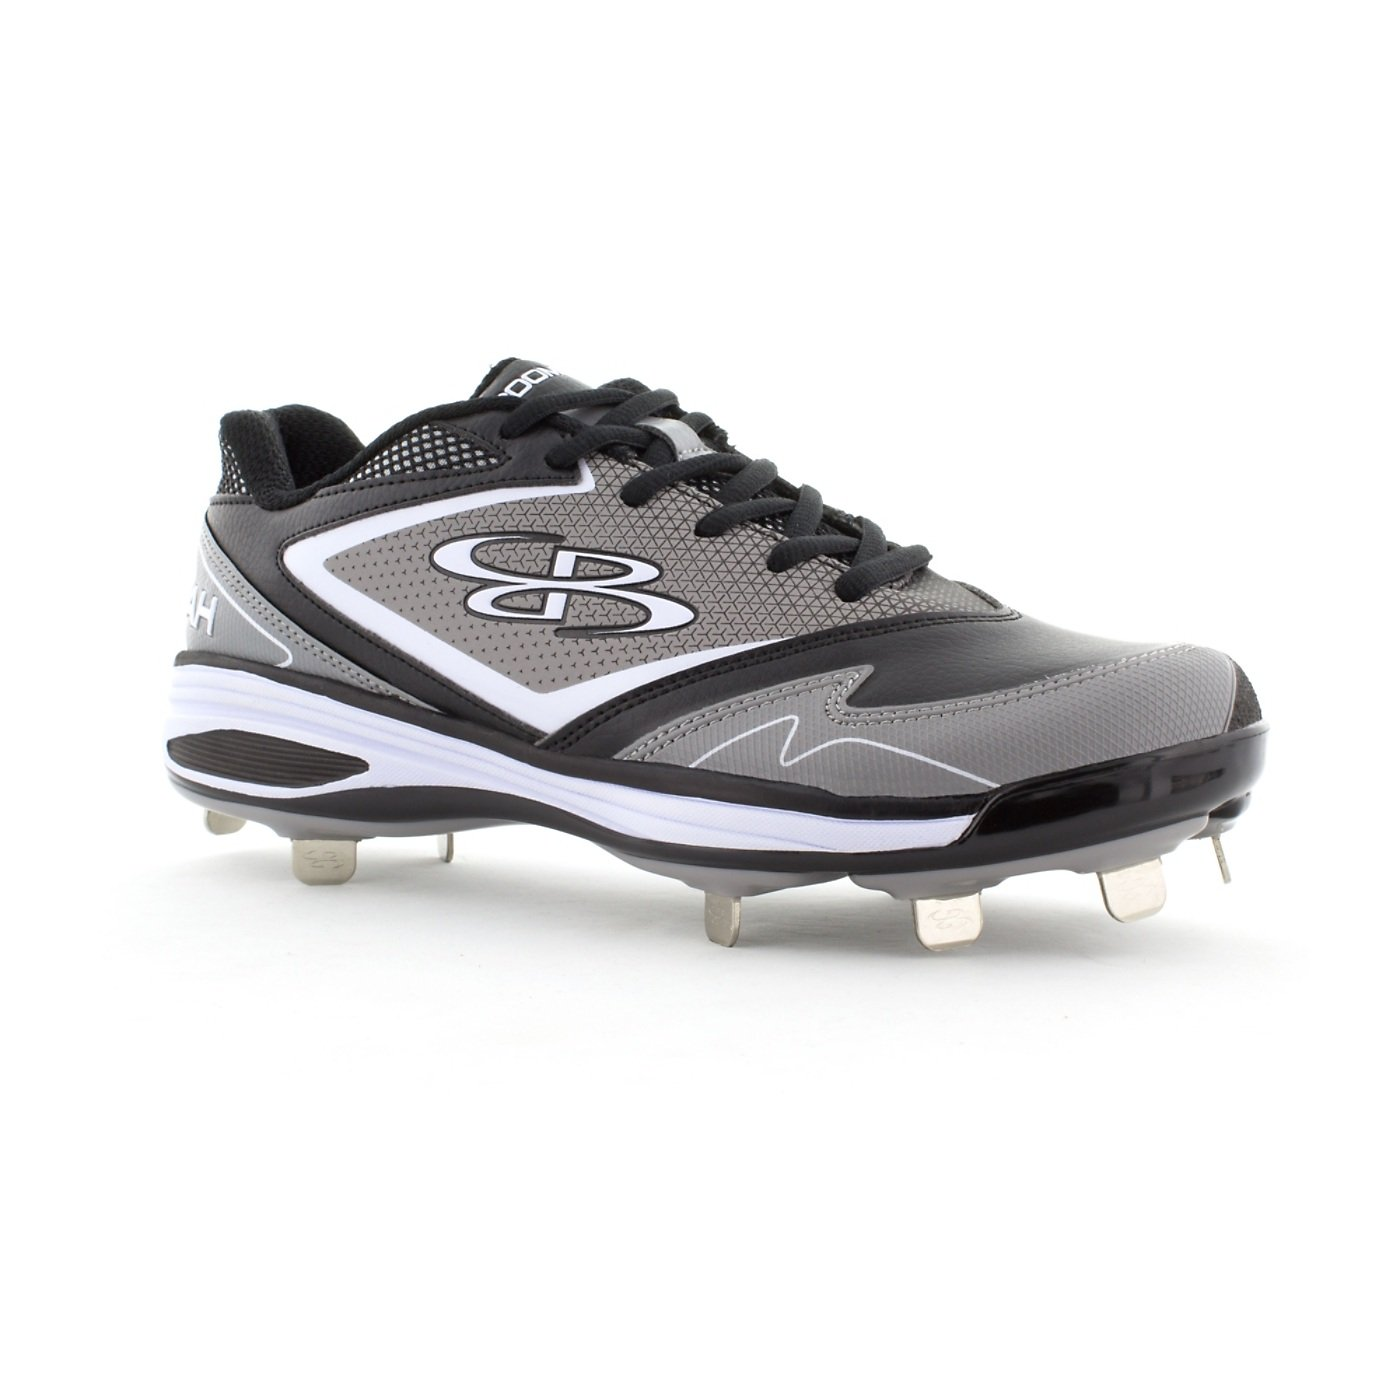 294d5af65f2 Amazon.com  Boombah Women s A-Game Metal Cleats - 6 Color Options -  Multiple Sizes  Sports   Outdoors